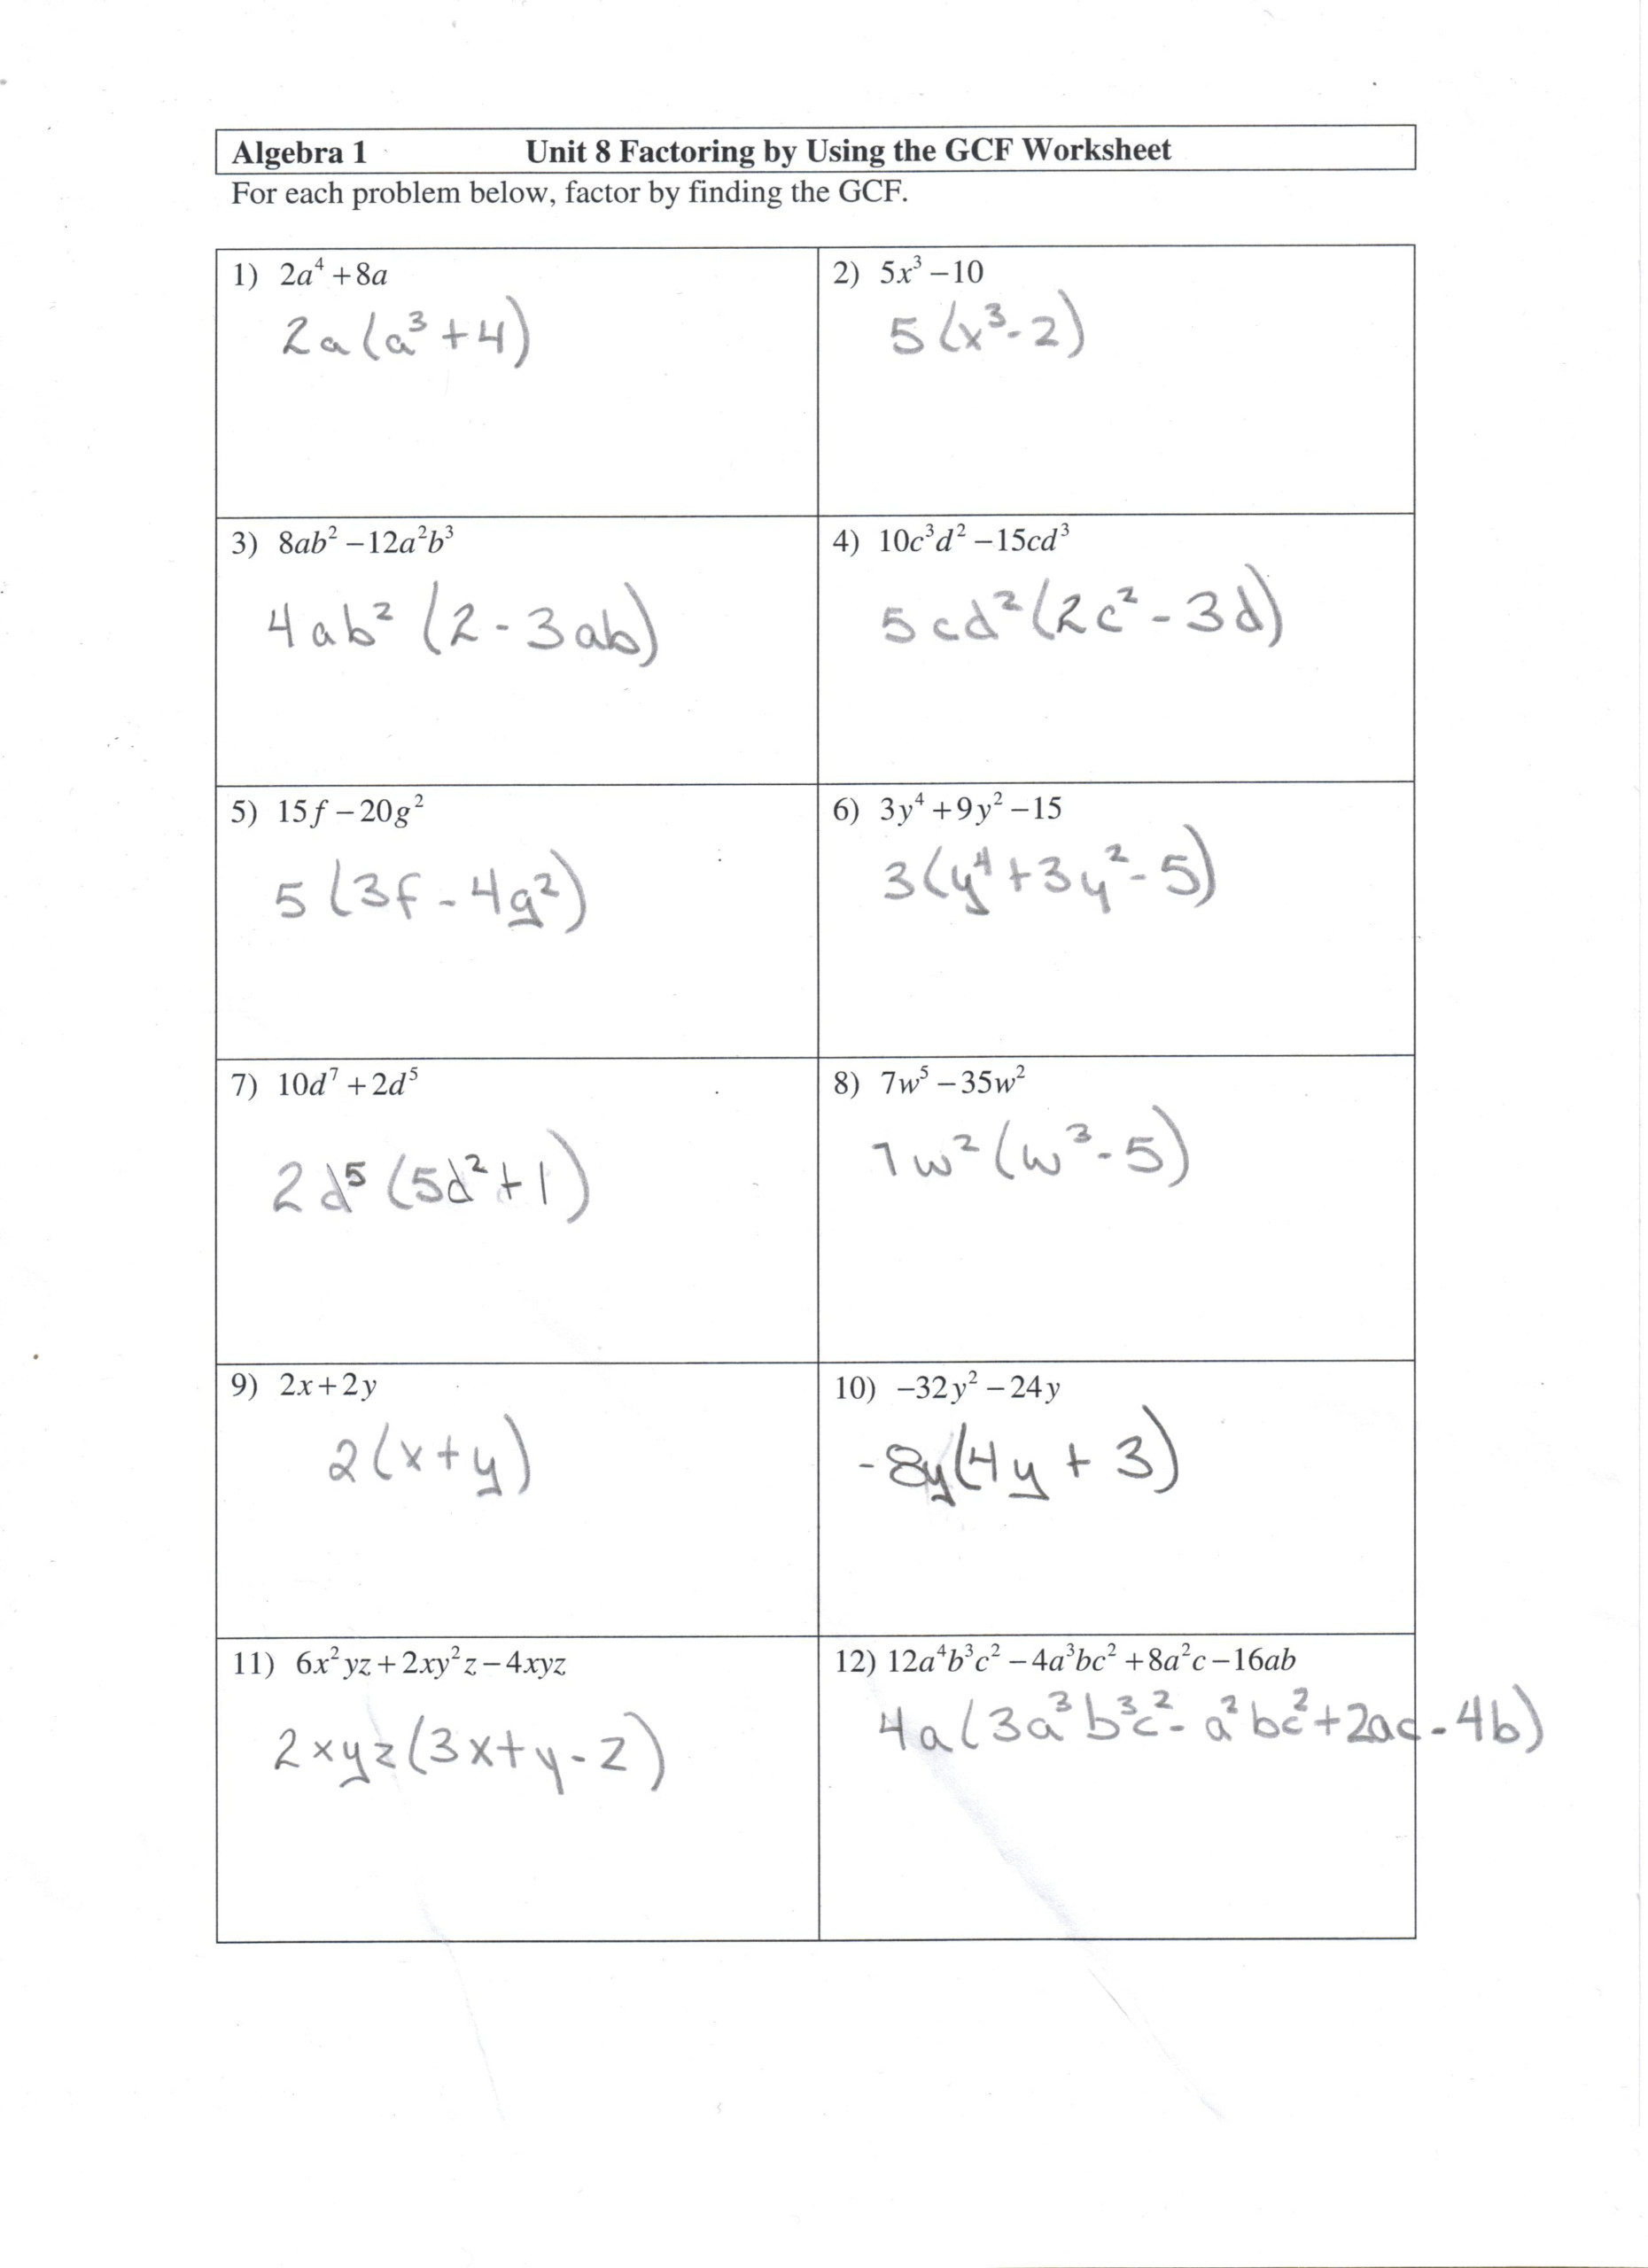 Algebra 2 Factoring Worksheet With Answers